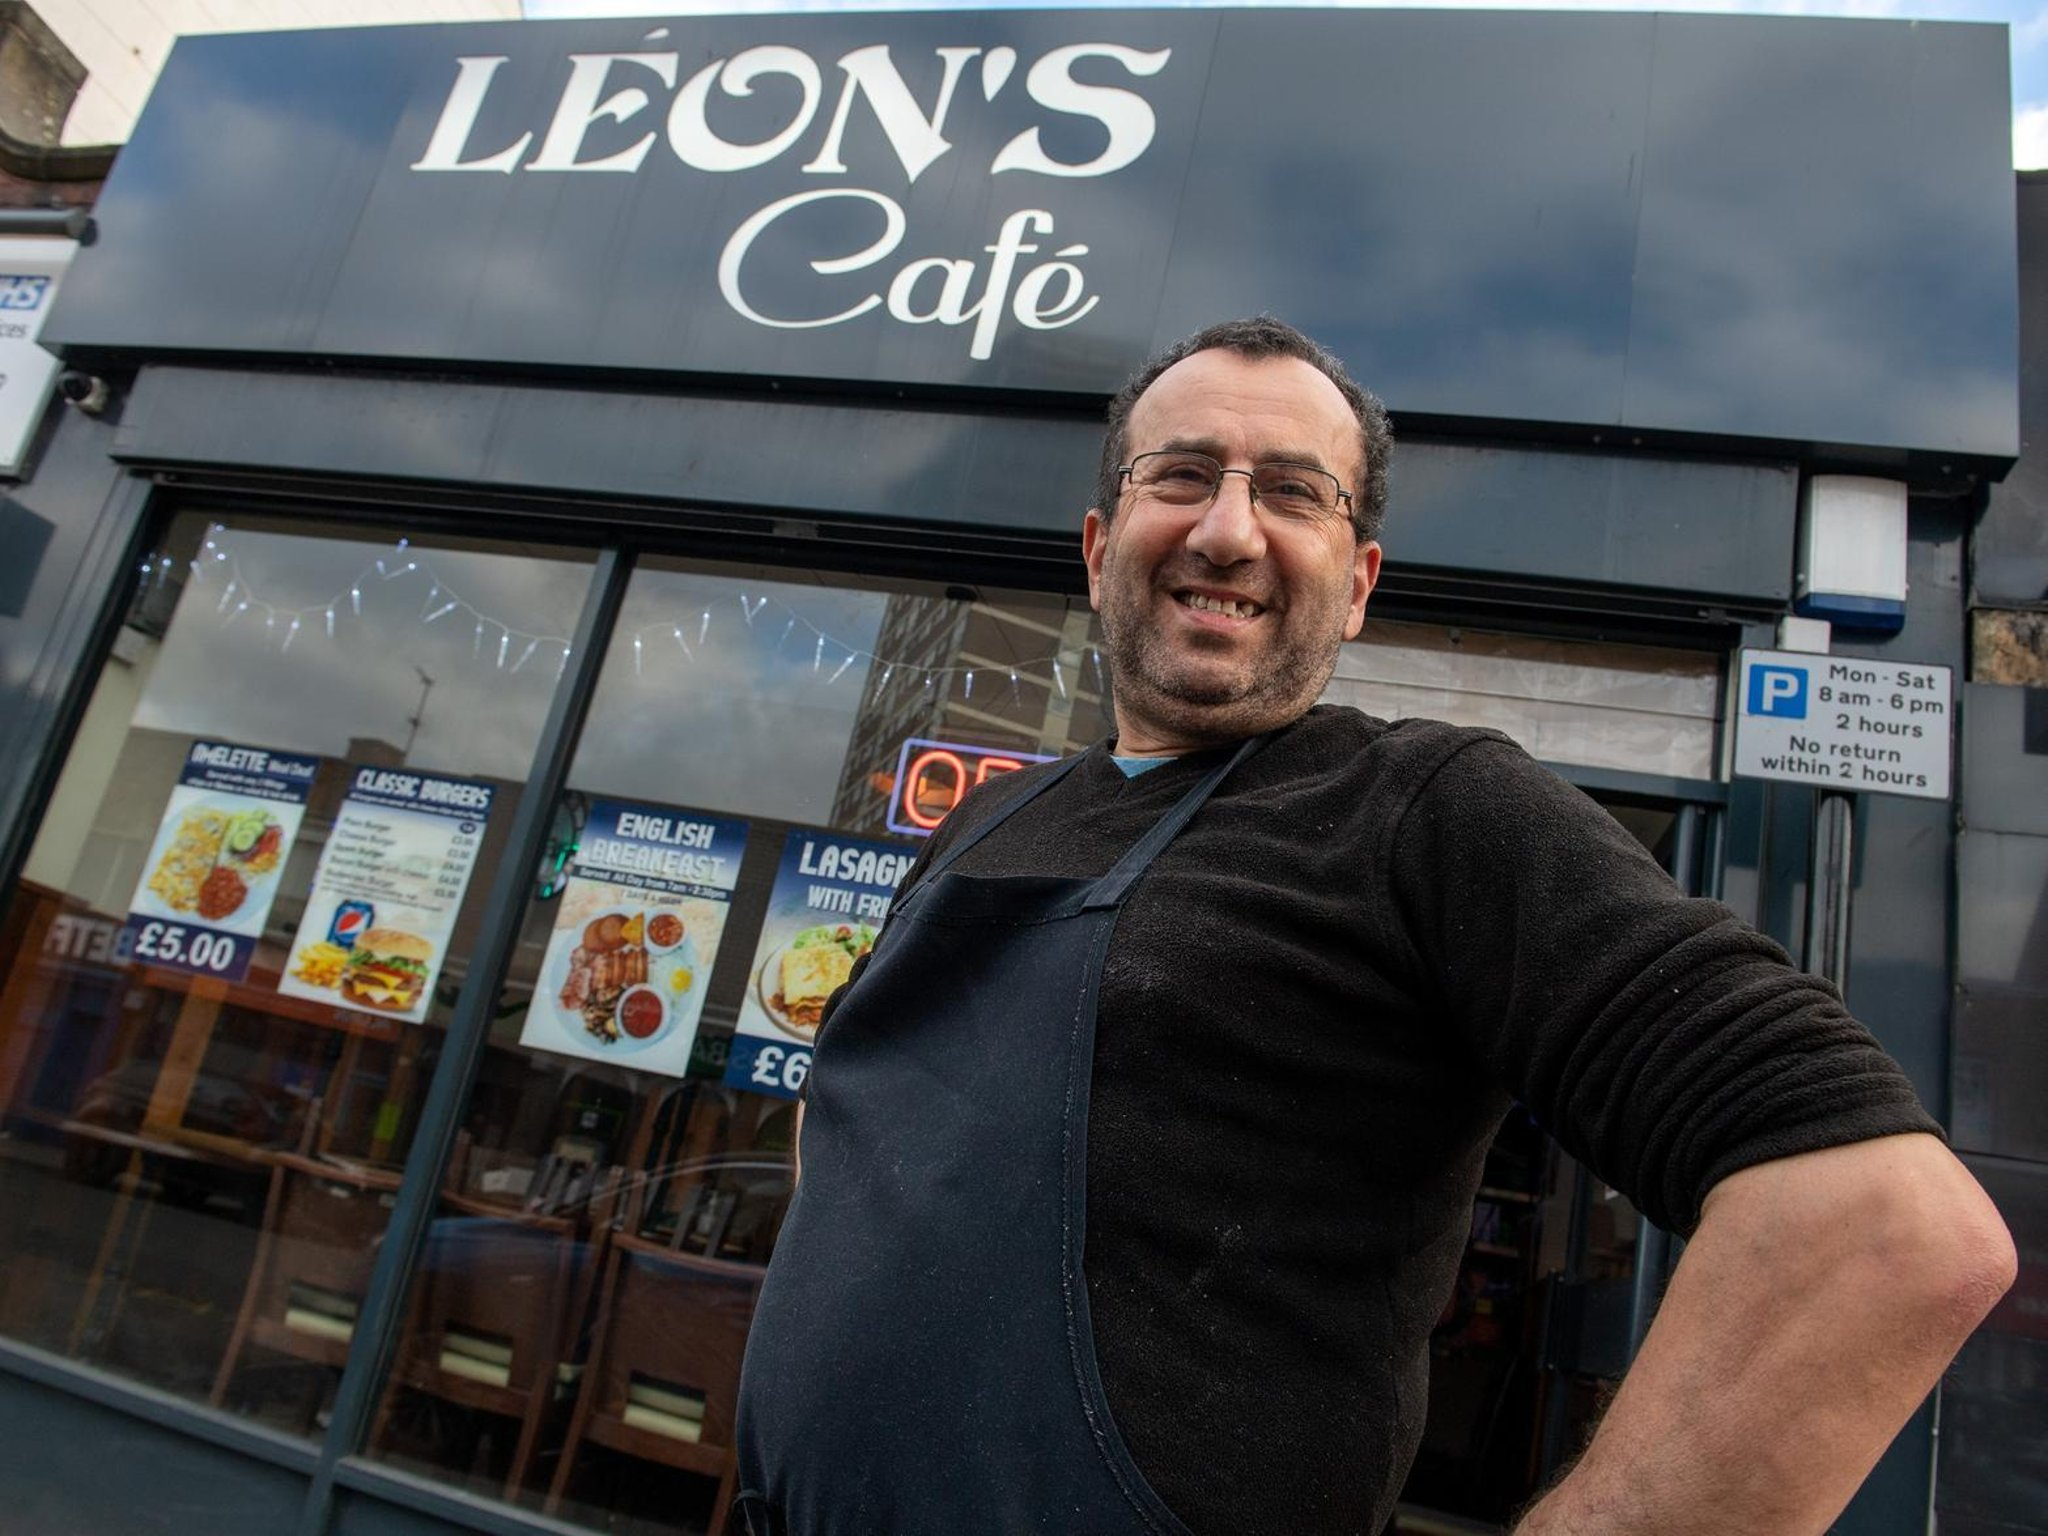 Leeds cafe owner raises £400 for elderly man who was robbed and assaulted in Armley